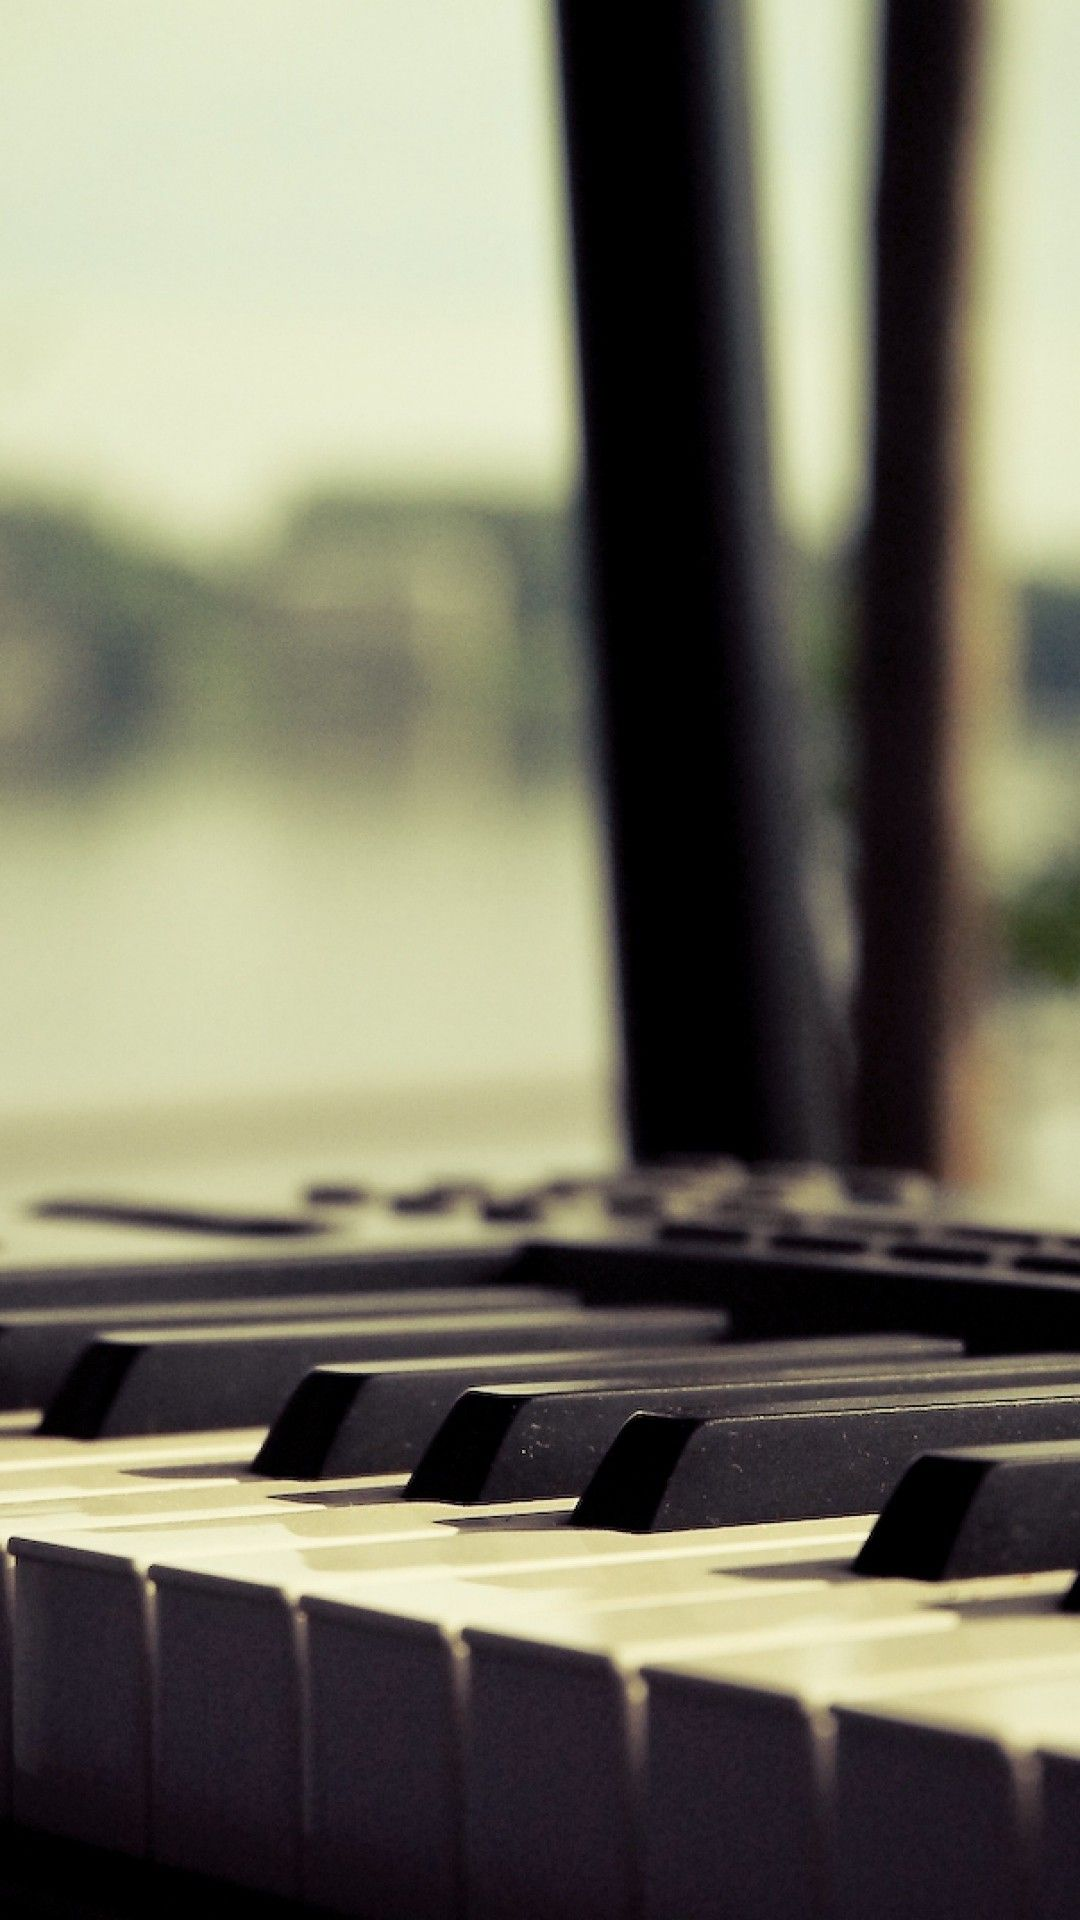 Piano Iphone Wallpapers Top Free Piano Iphone Backgrounds Wallpaperaccess